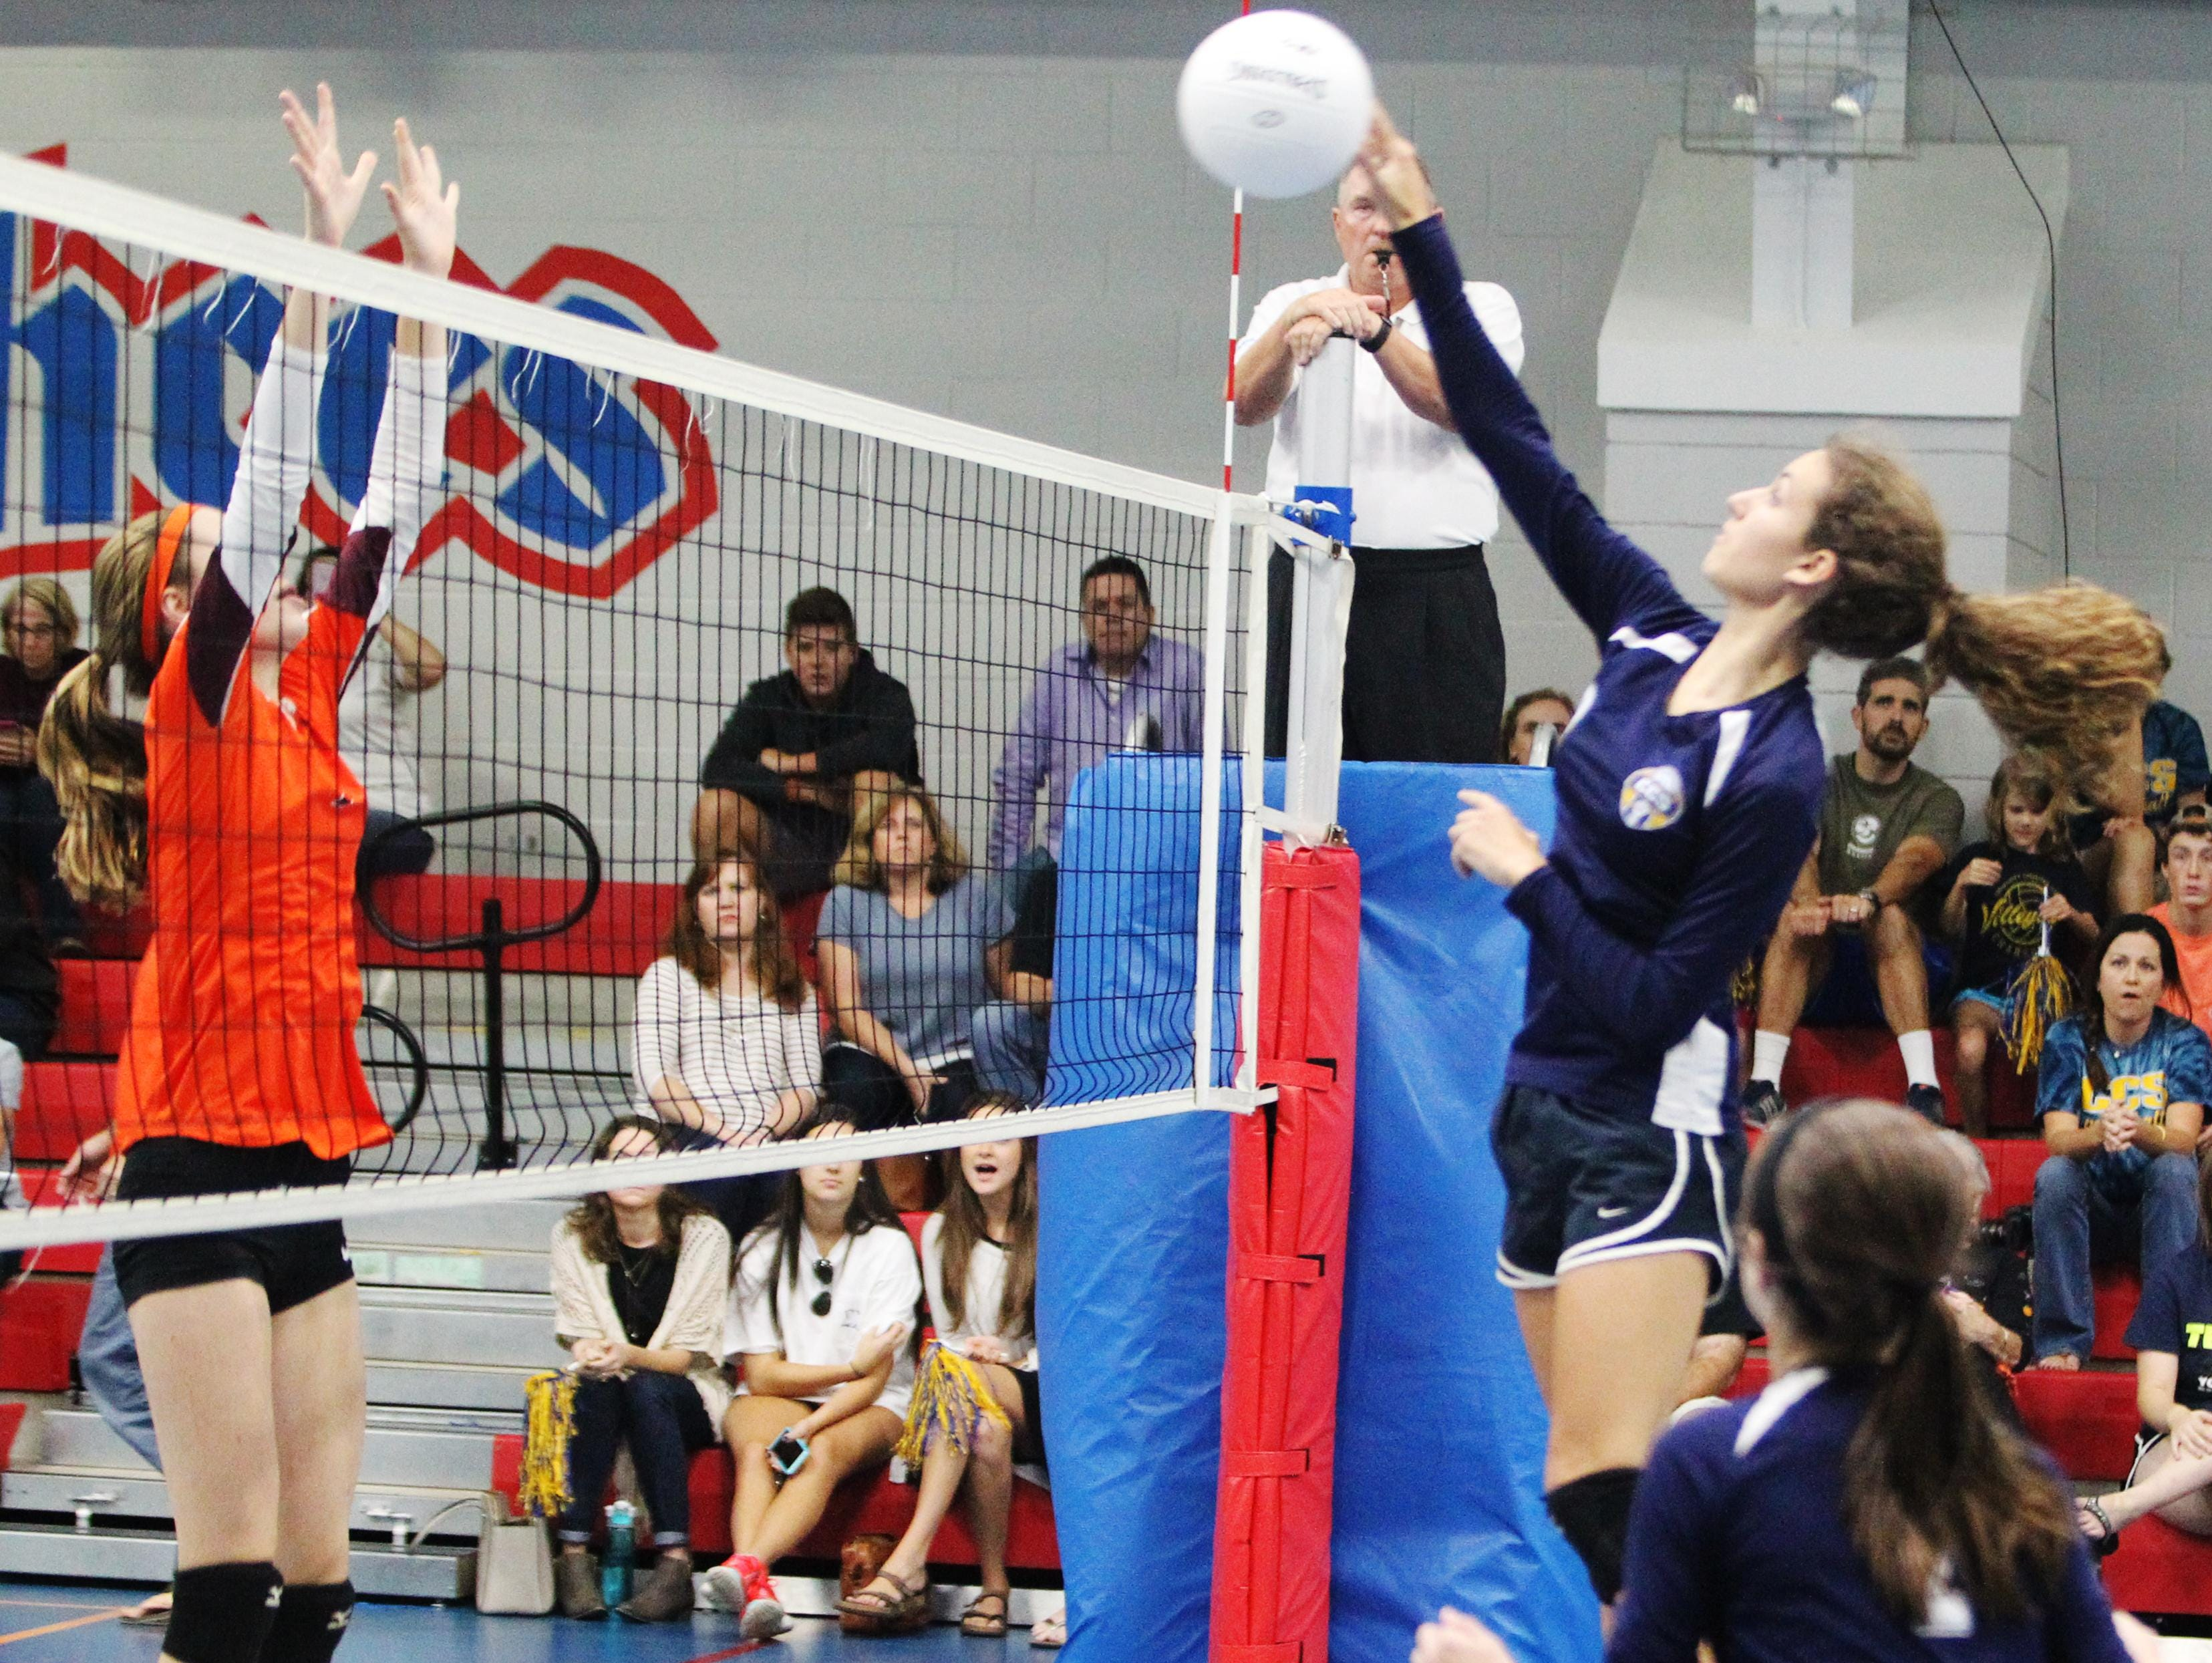 Community Christian School senior Amanda Post leaps to spike the ball in Wednesday's match against Christ's Church Academy.